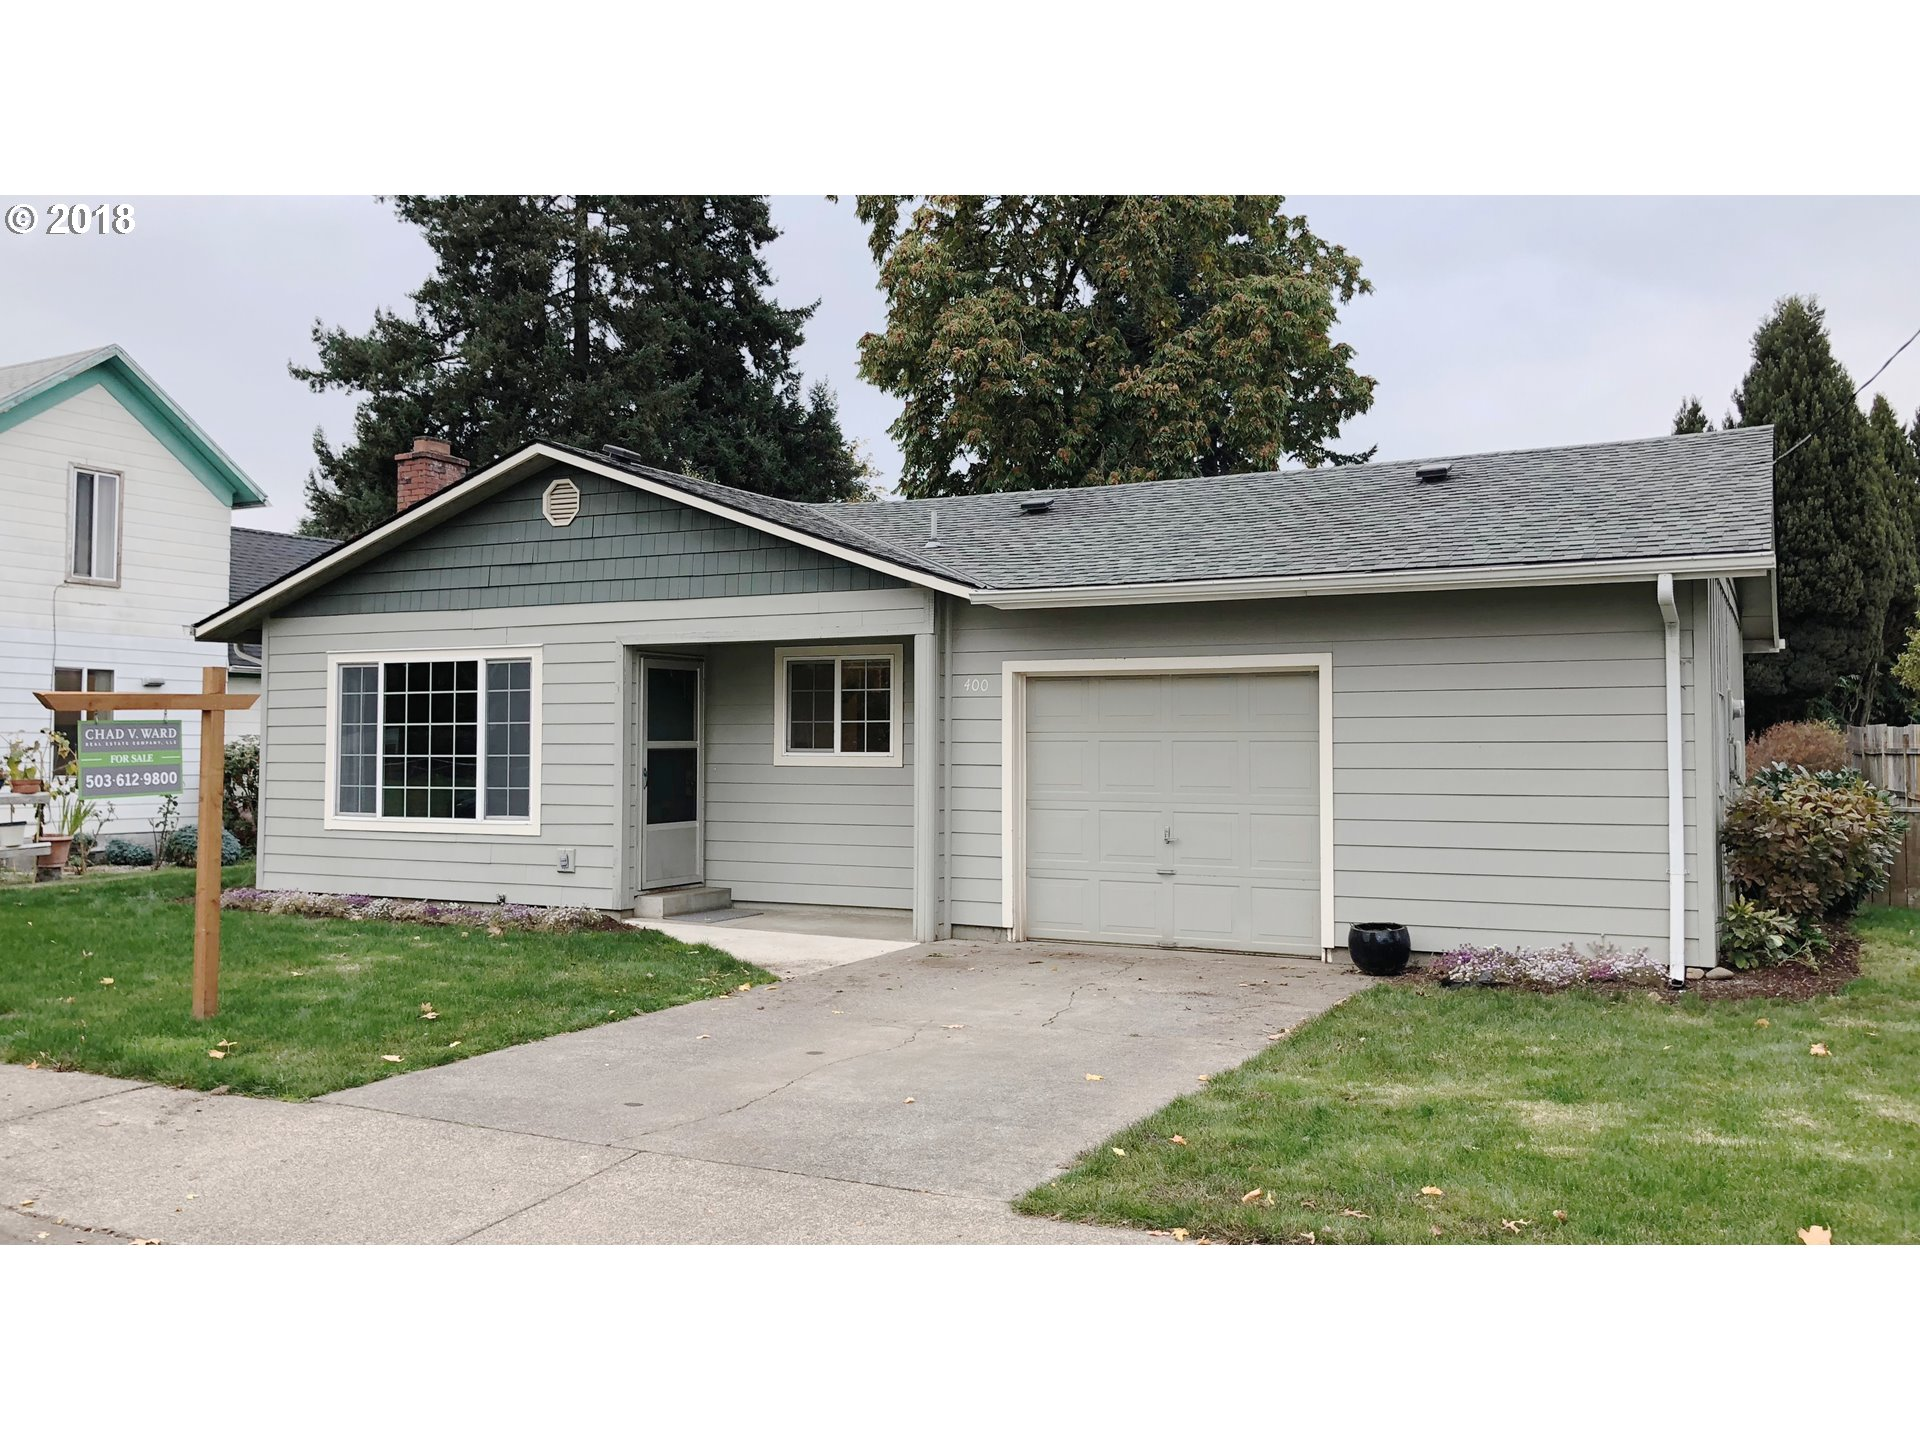 400 NW 6TH AVE Canby, OR 97013 - MLS #: 18585373